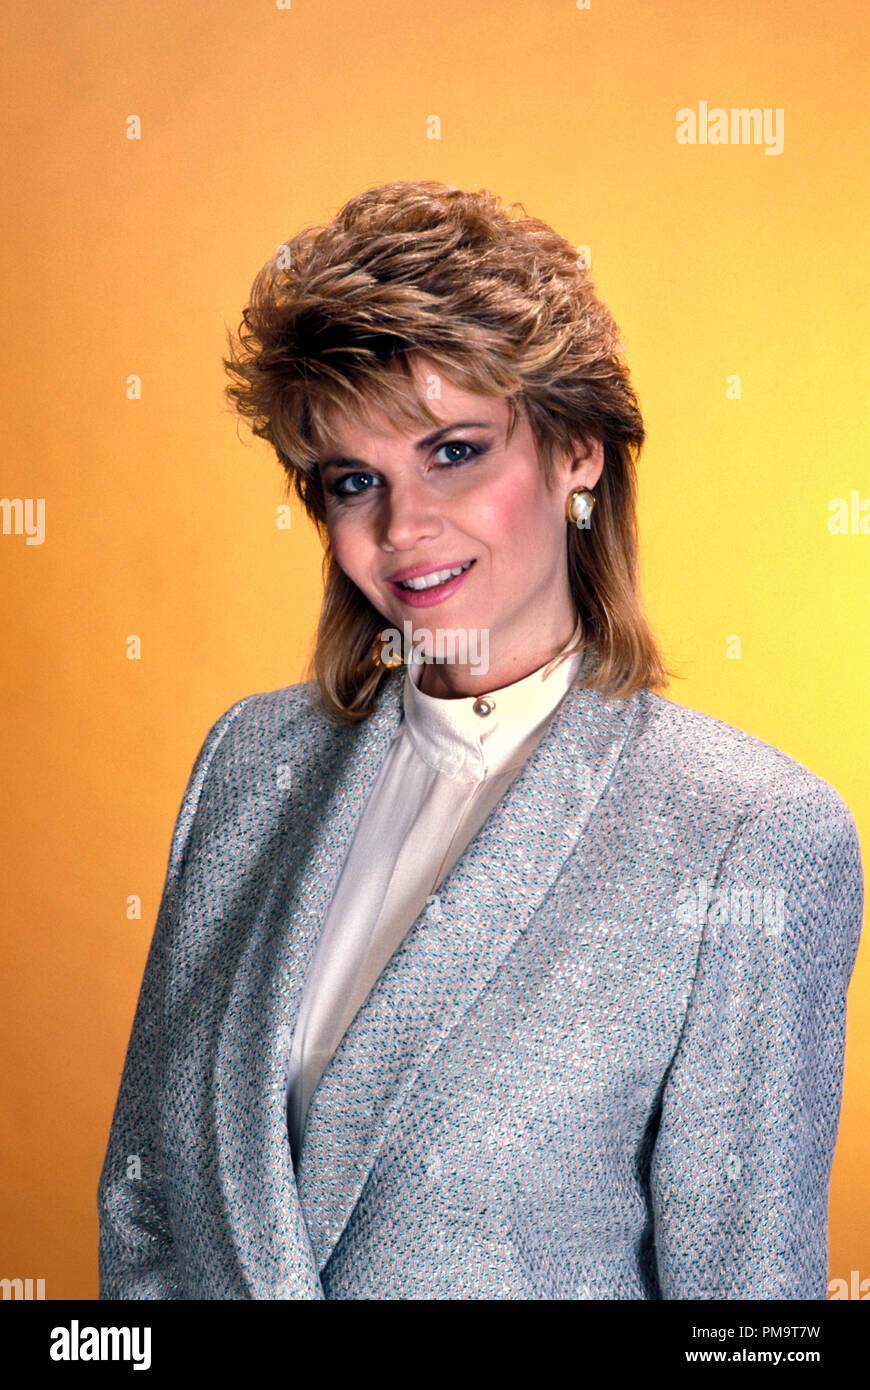 Studio Publicity Still from 'Night Court' Markie Post 1988   All Rights Reserved   File Reference # 31694147THA  For Editorial Use Only - Stock Image